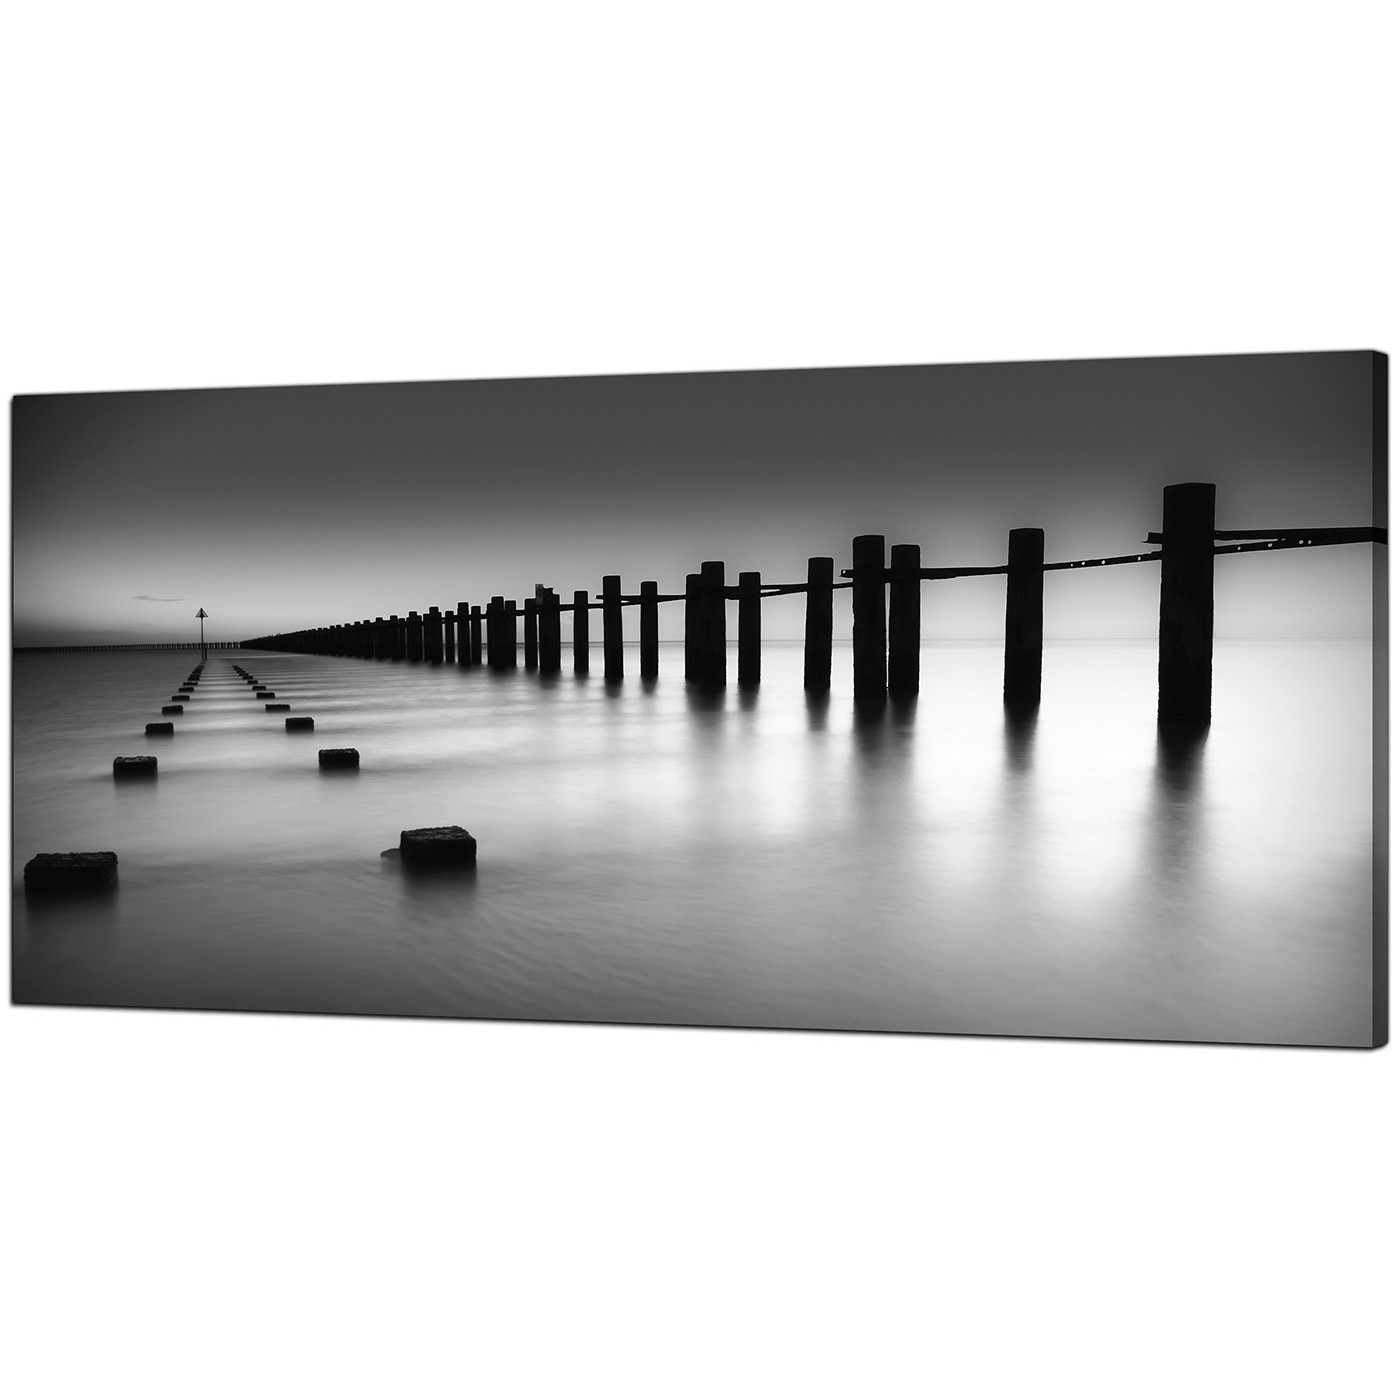 Modern Black And White Canvas Art Of The Sea Intended For Widely Used Black And White Photography Canvas Wall Art (View 8 of 15)